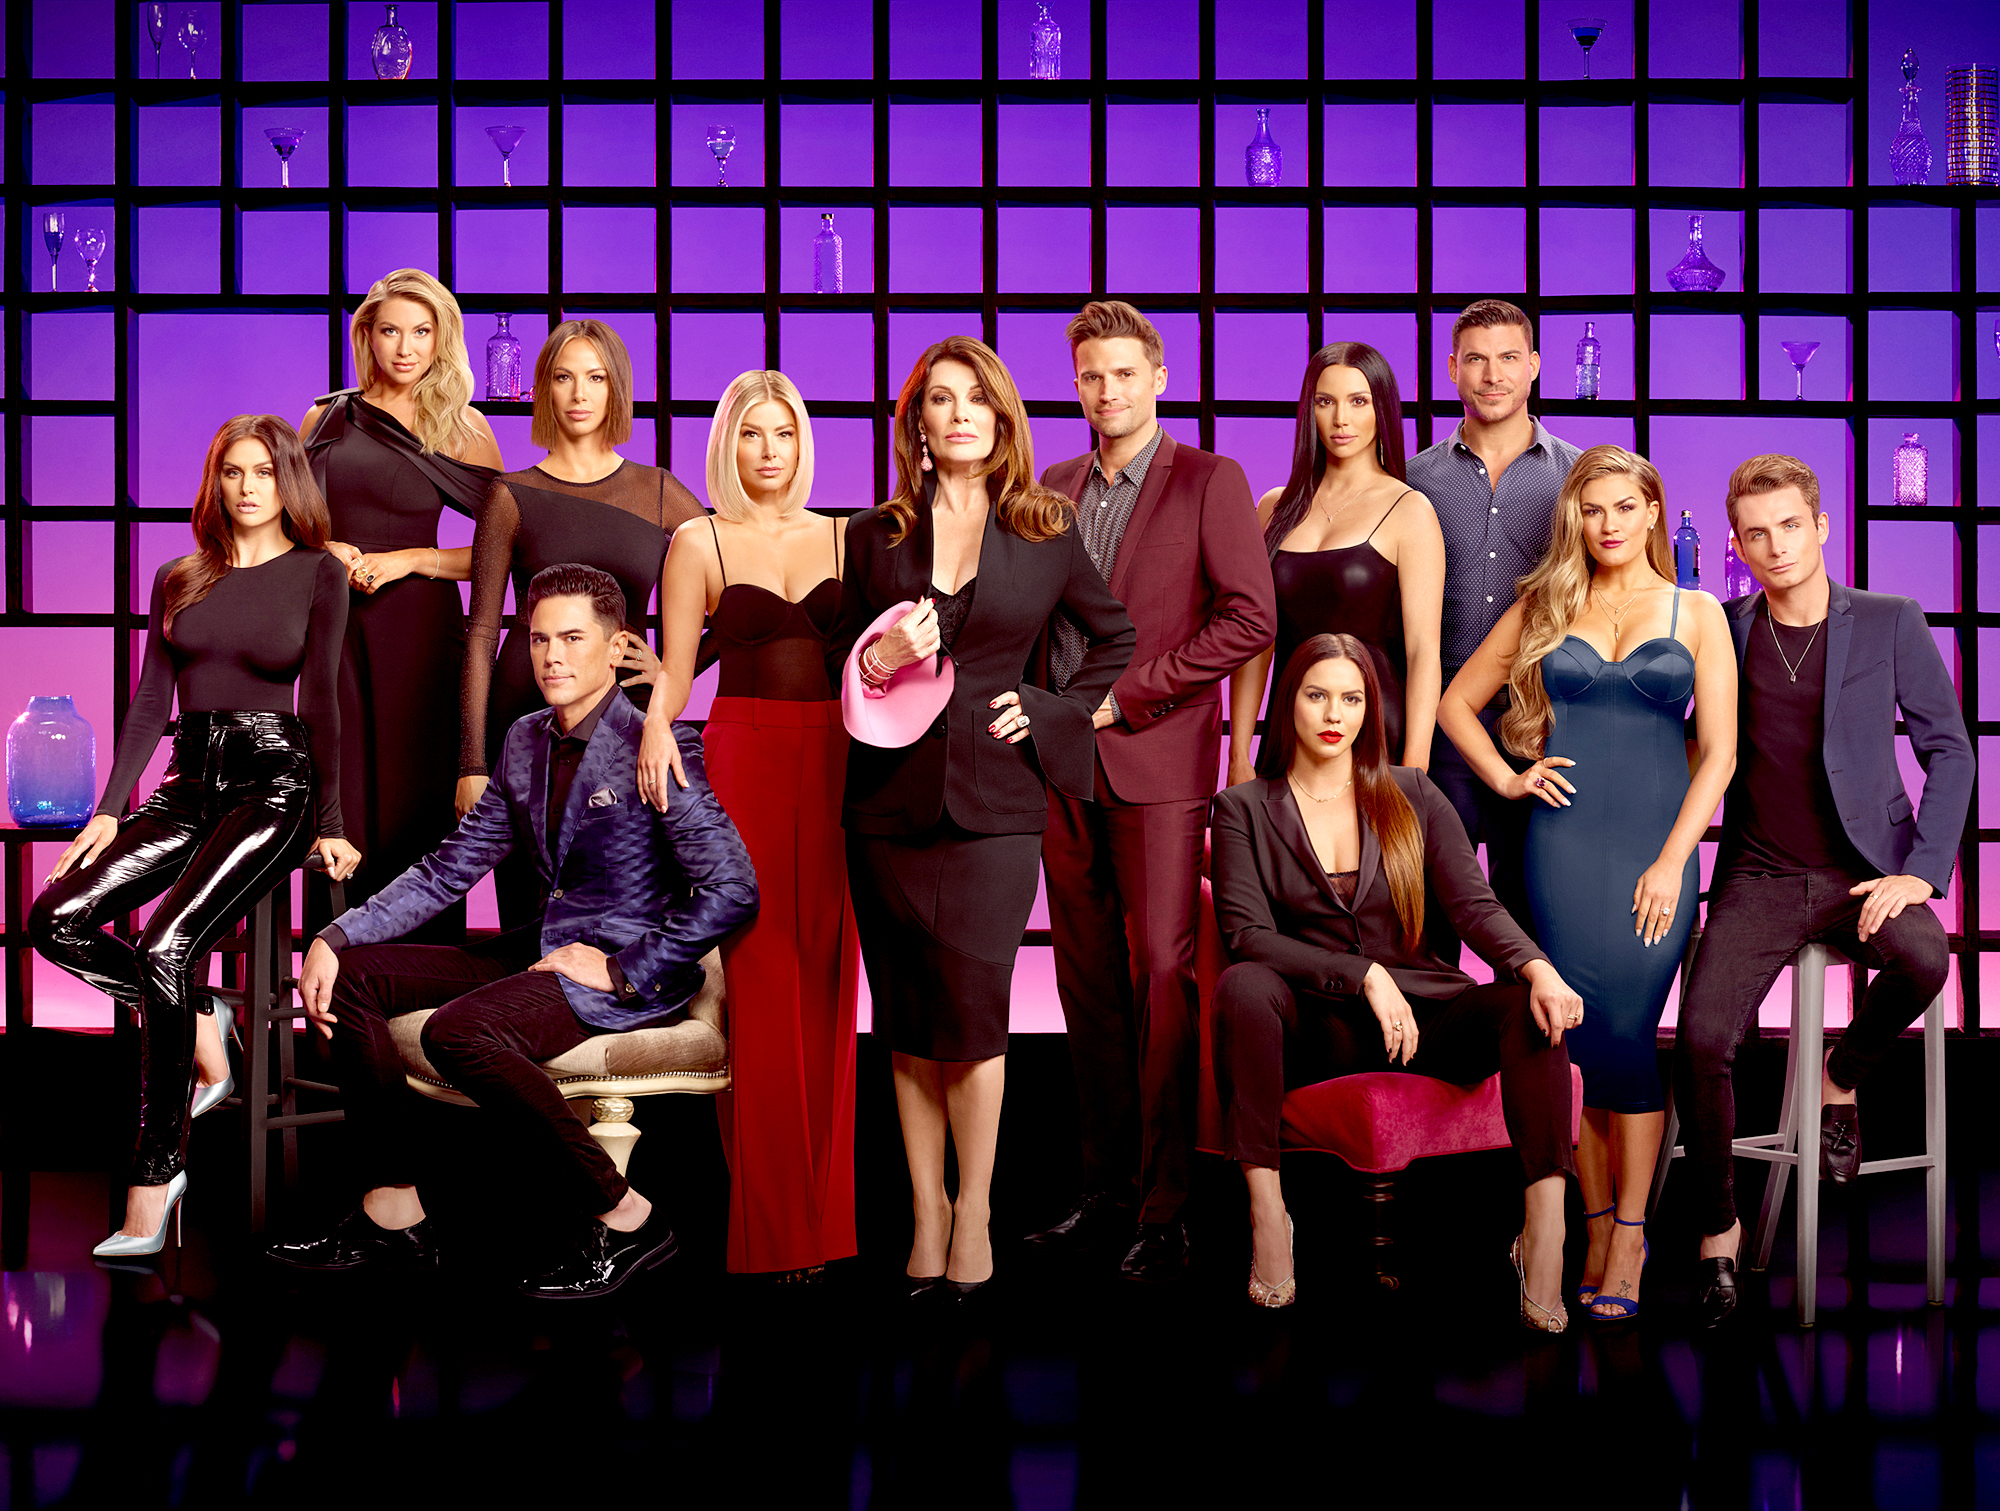 Vanderpump-Rules'-Most-Iconic-Phrases-and-Sayings